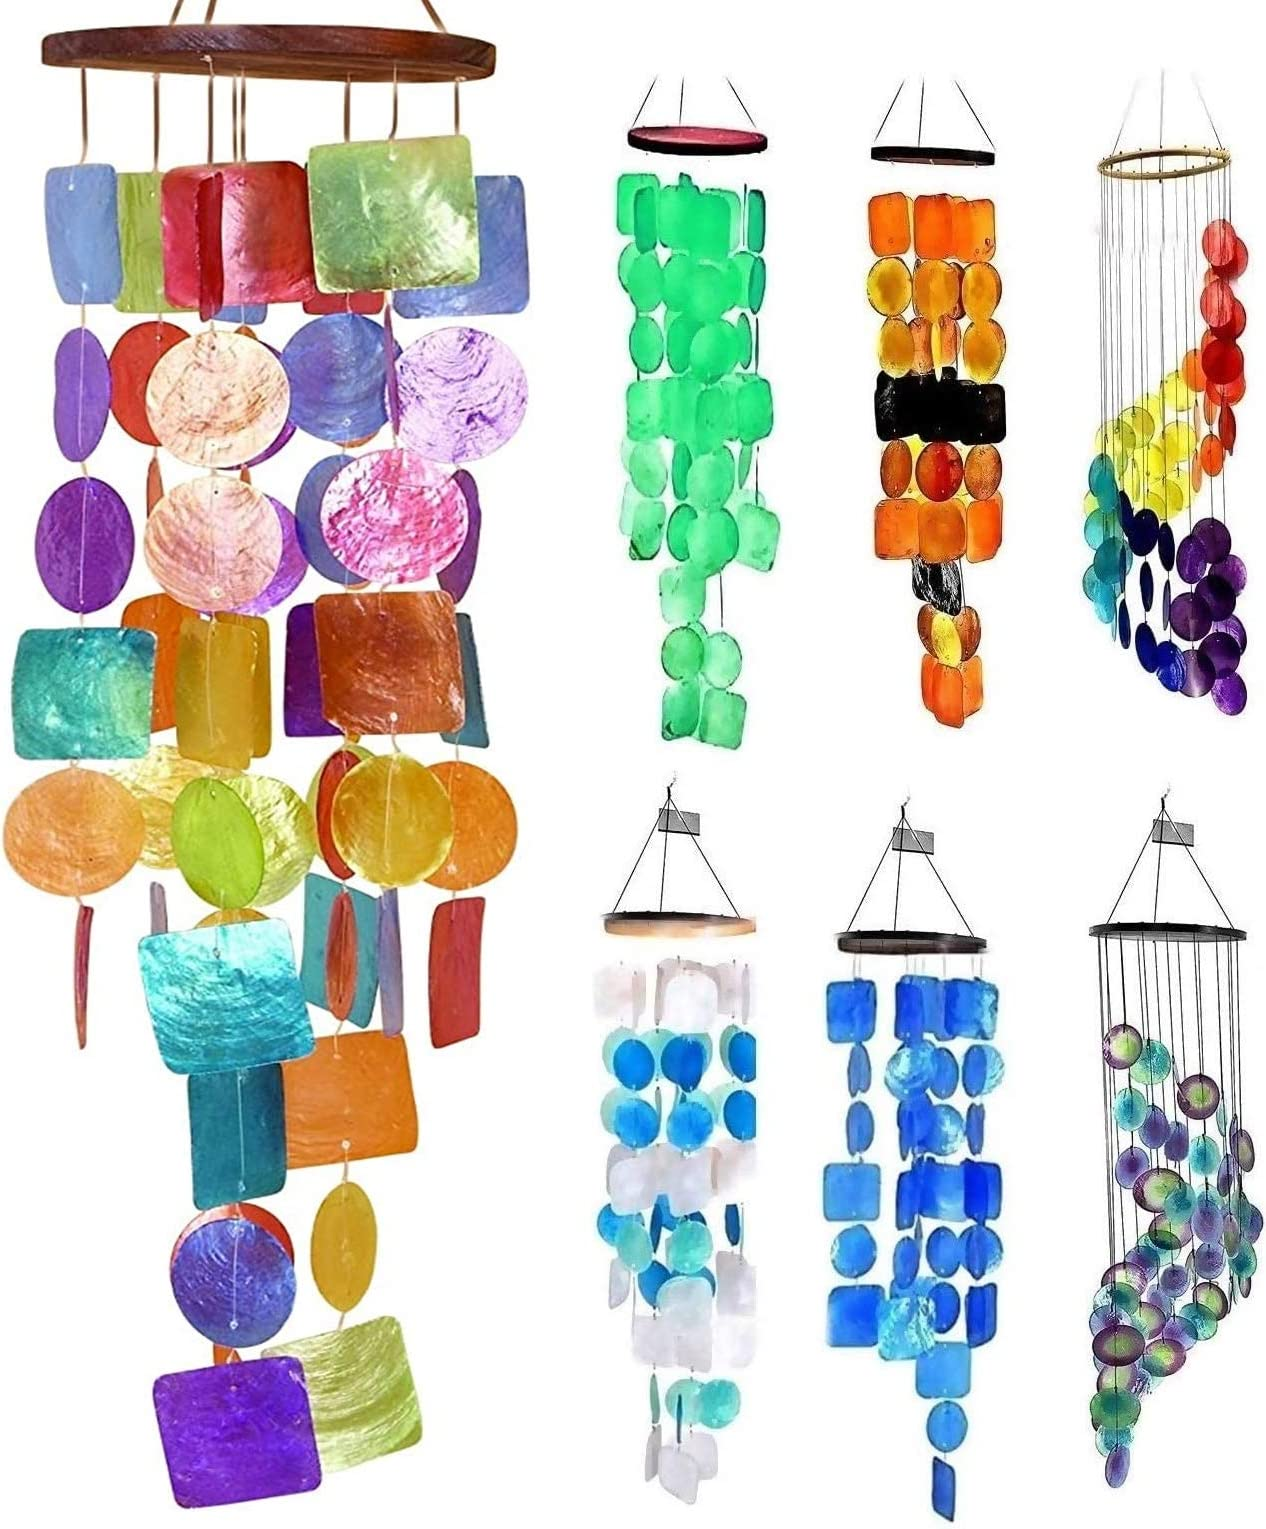 Original Design Elegant Copper Swirl of Colorful Beads and Bells Wind Chime One-of-a-Kind Glass Beads Indoor Handmade Bells Outdoor